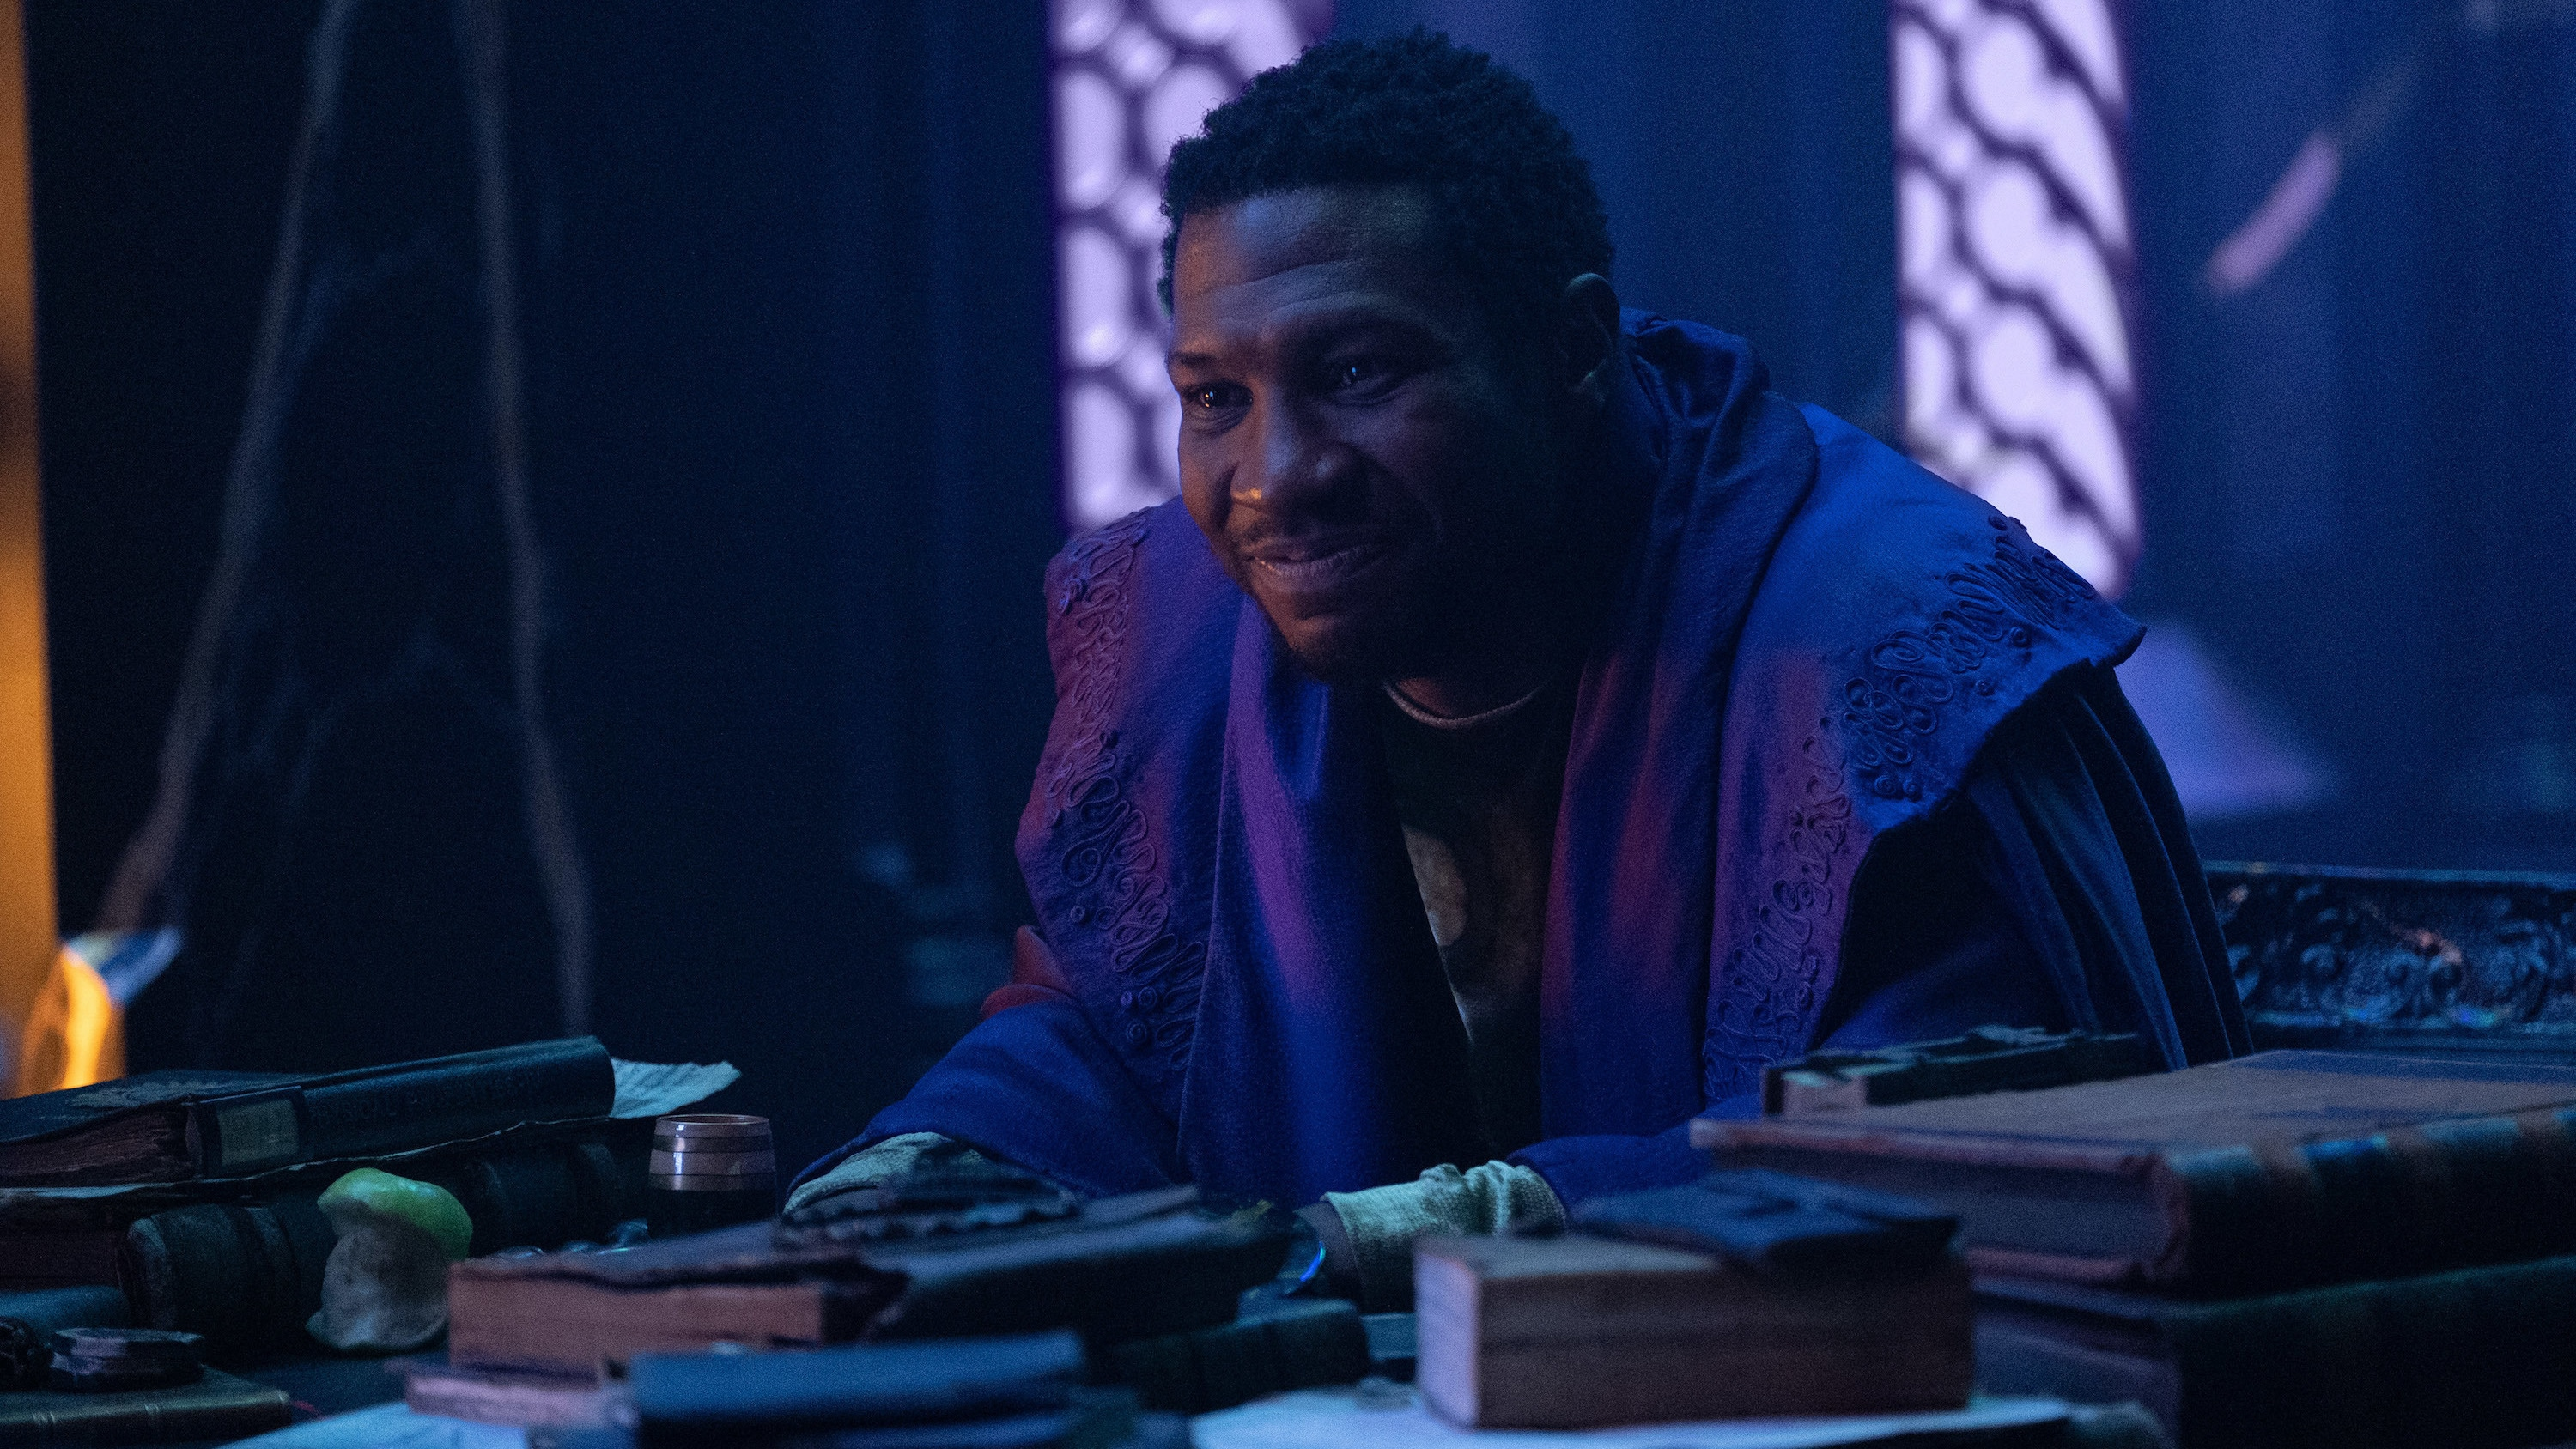 He Who Remains (Jonathan Majors) in Marvel Studios' LOKI, exclusively on Disney+. Photo by Chuck Zlotnick. ©Marvel Studios 2021. All Rights Reserved.